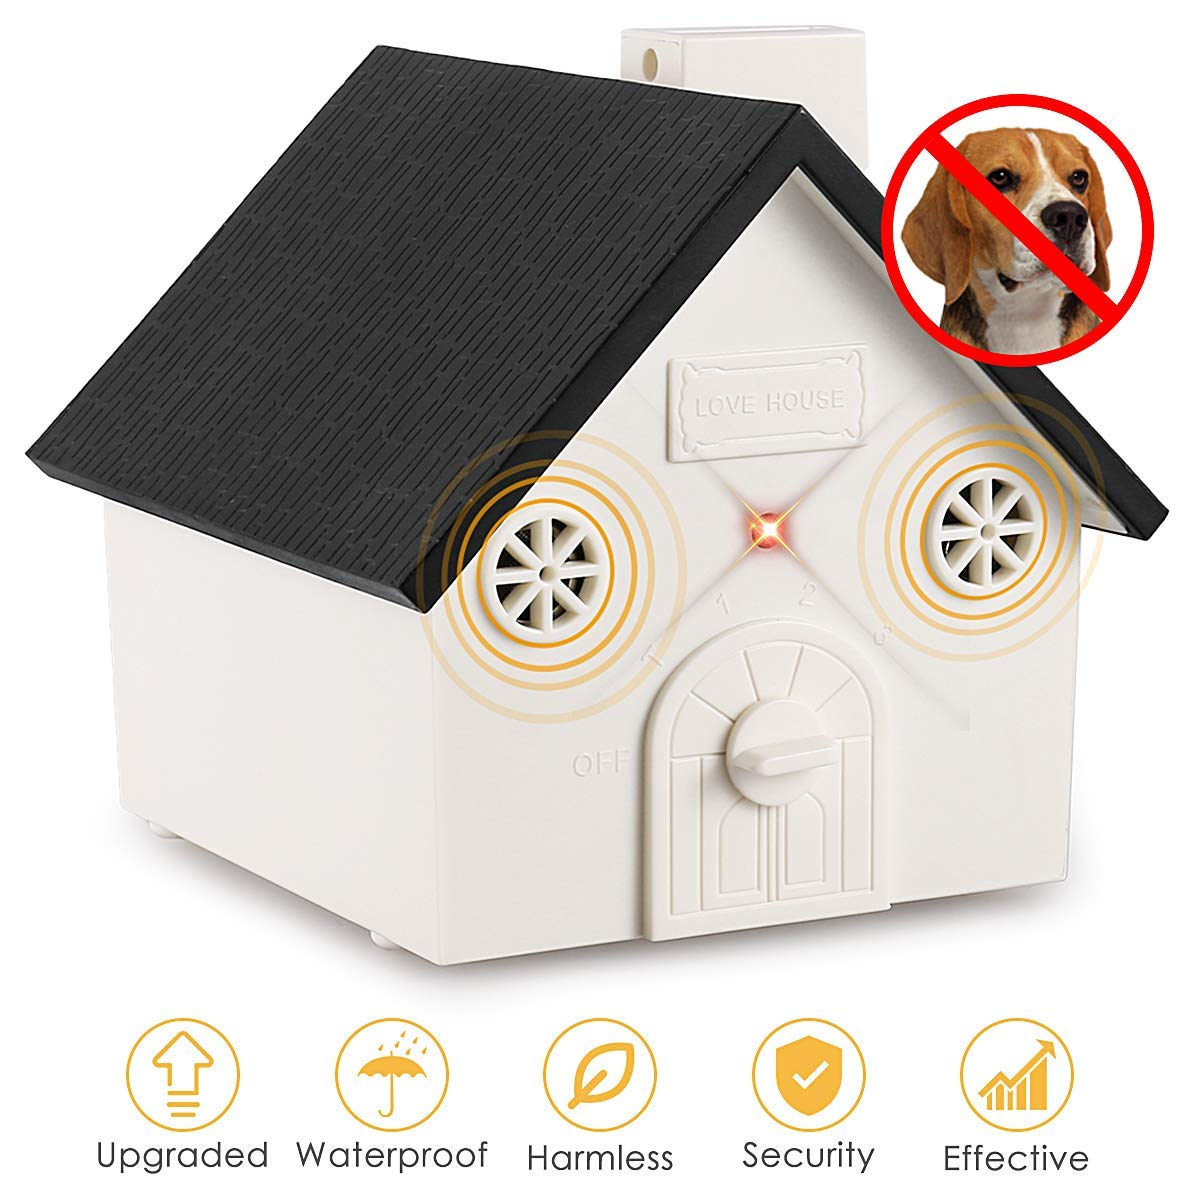 Zomma Anti Barking Device, 2019 New Bark Box Outdoor Dog Repellent Device with Adjustable Ultrasonic Level Control Safe for Small Medium Large Dogs, Sonic Bark Deterrents, Bark Control Device by Zomma